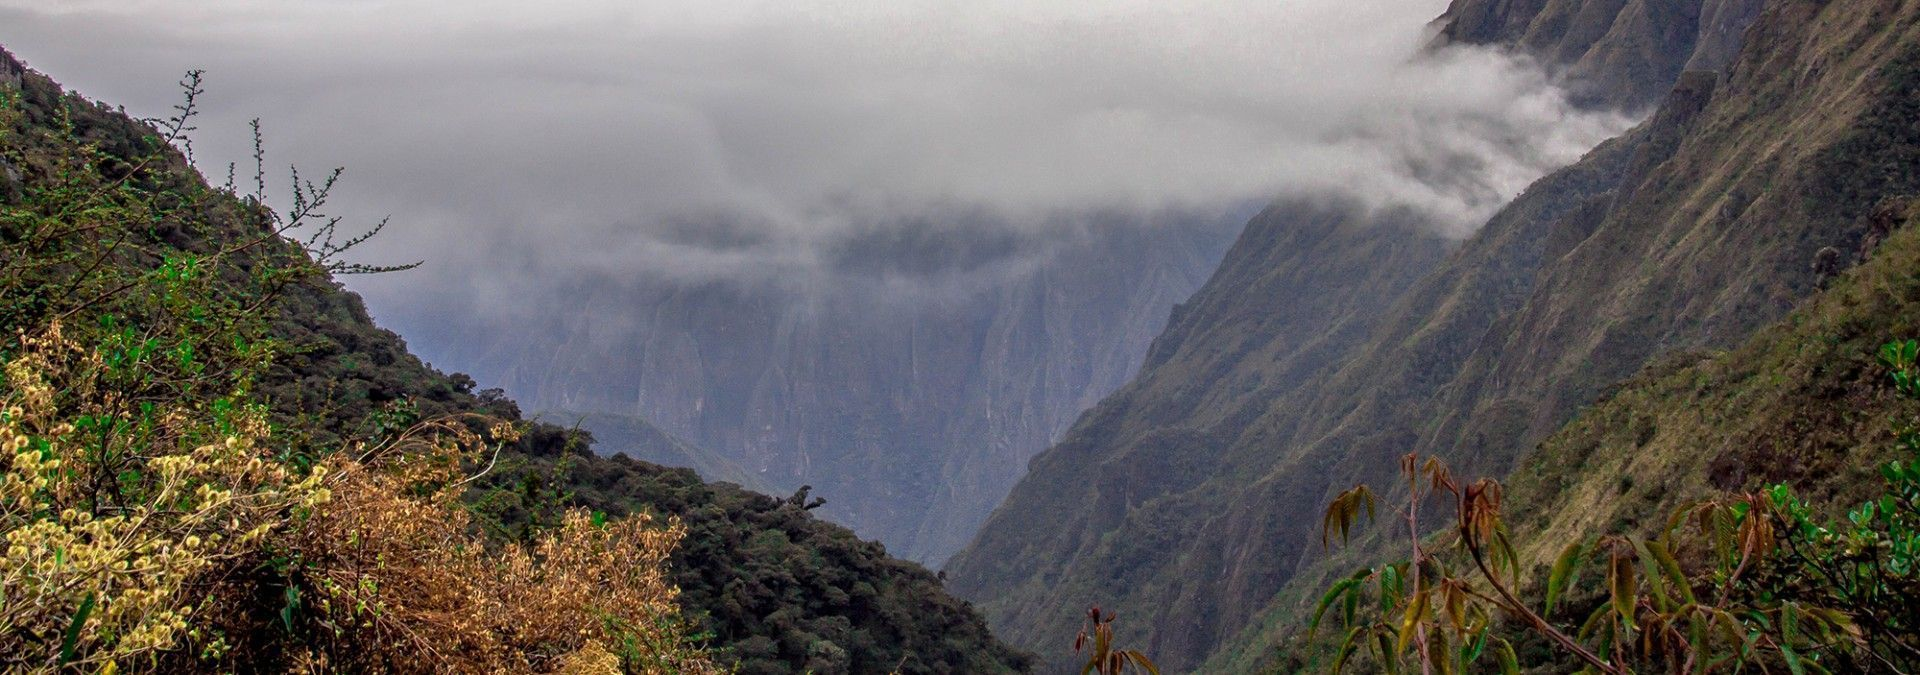 Cloud_over_Dead_Womans_Pass_Inca_Trail.jpg